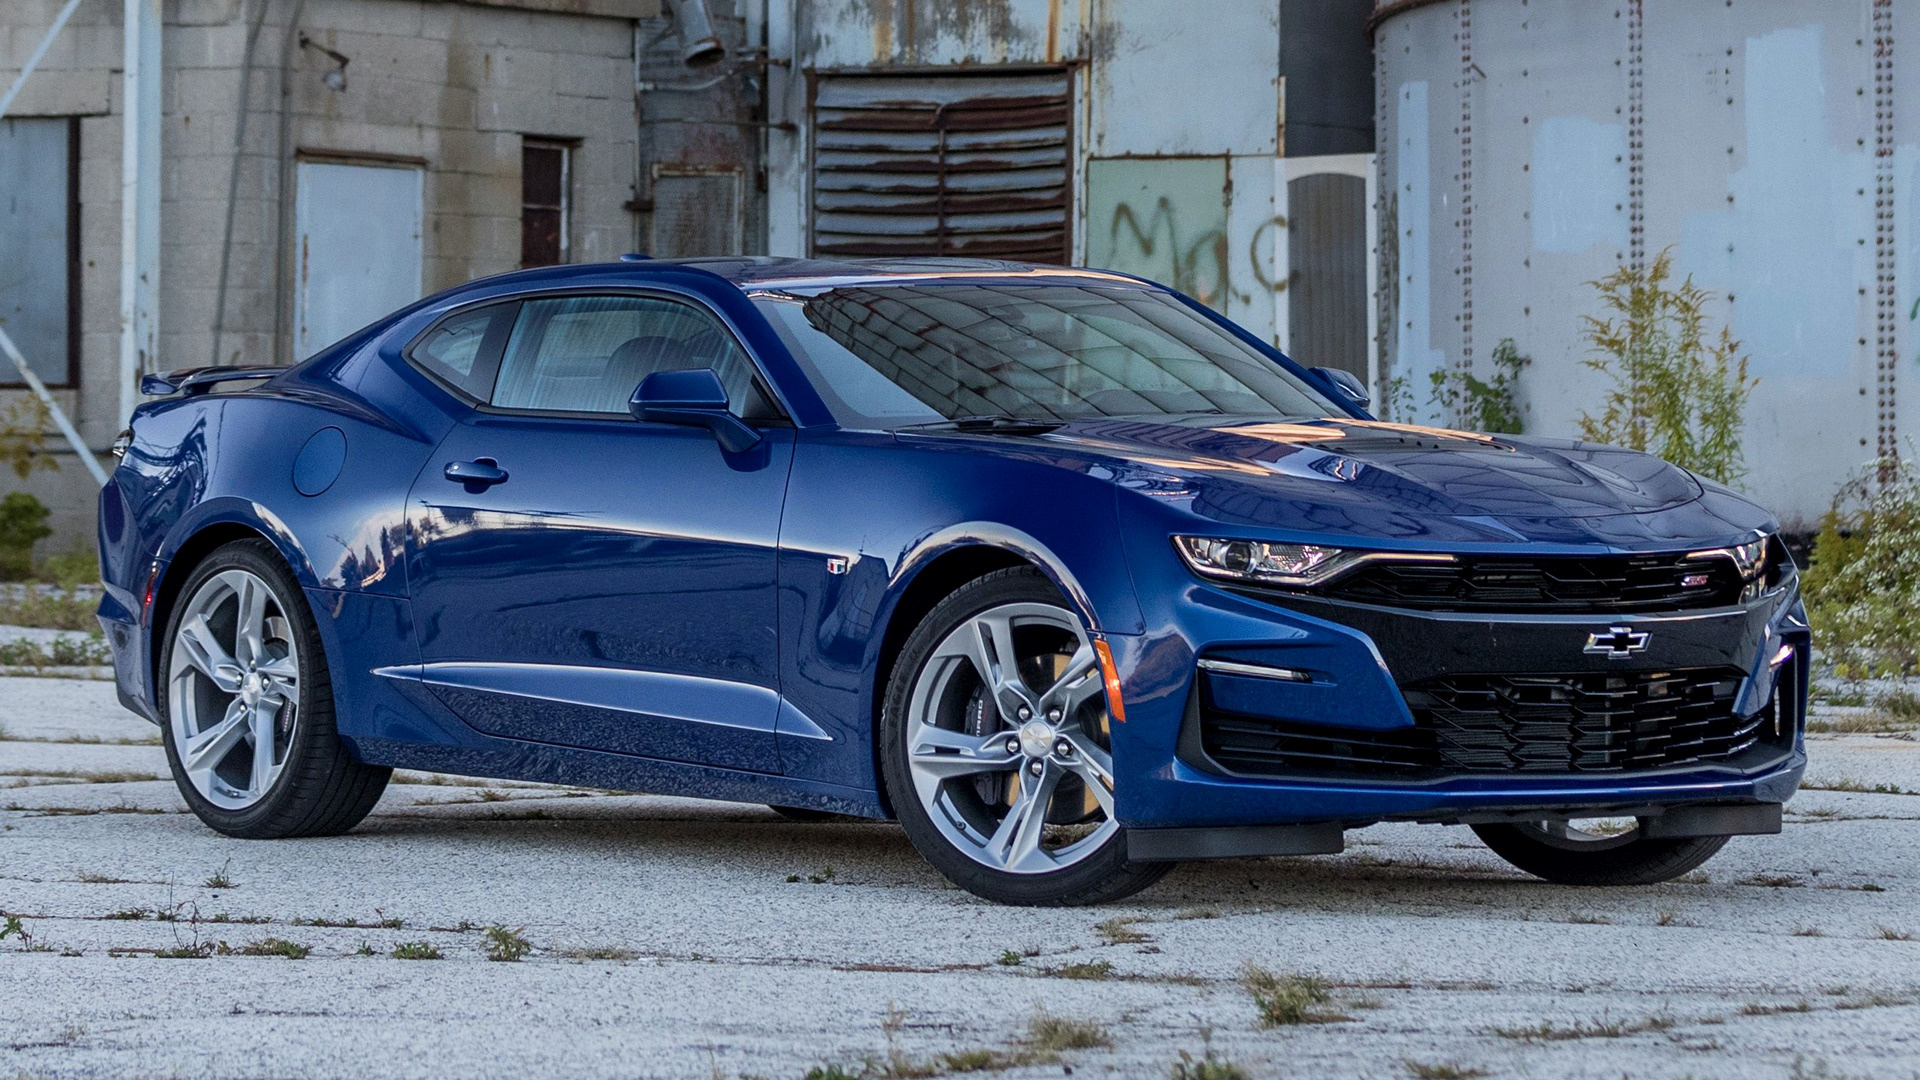 2019 Chevrolet Camaro Ss Wallpaper: 2019 Chevrolet Camaro SS - Wallpapers And HD Images